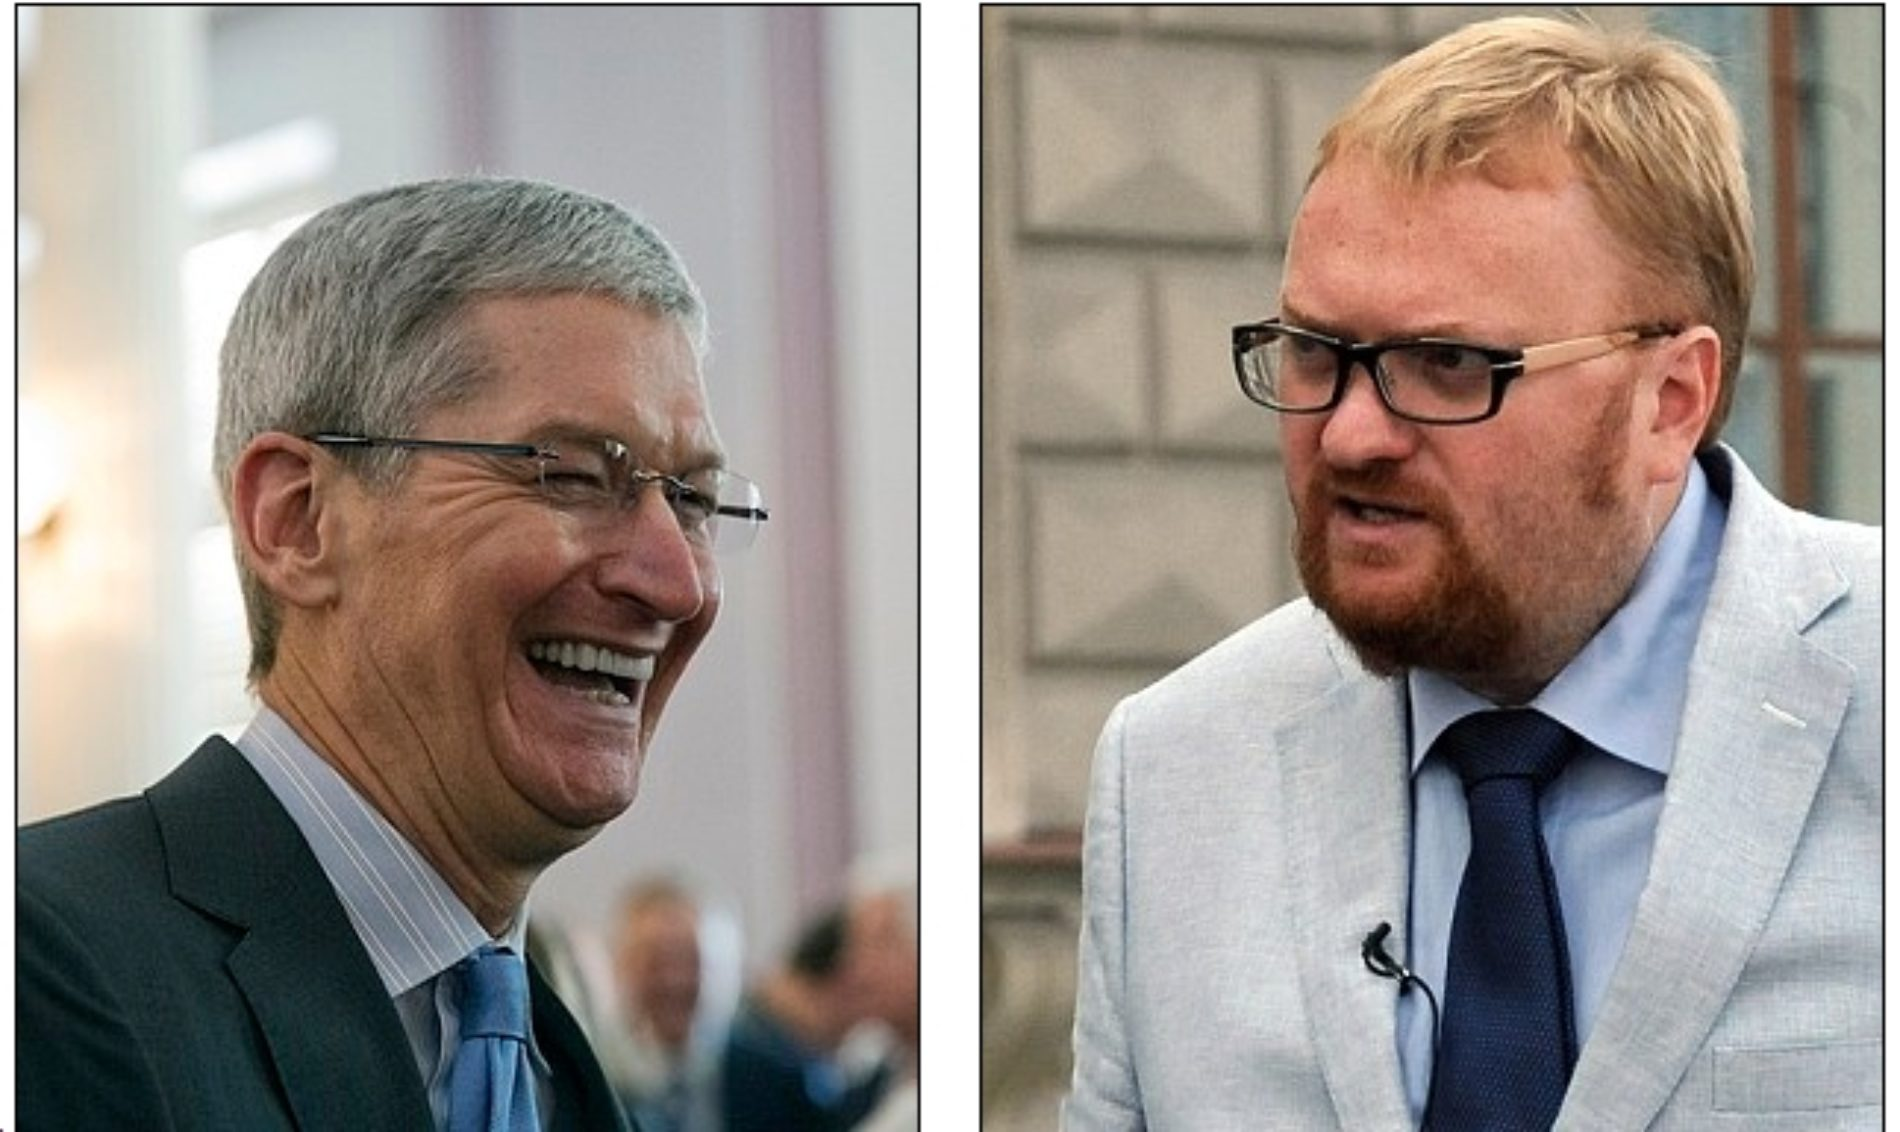 Russian politician expresses his outrage over Apple CEO Tim Cook's coming out